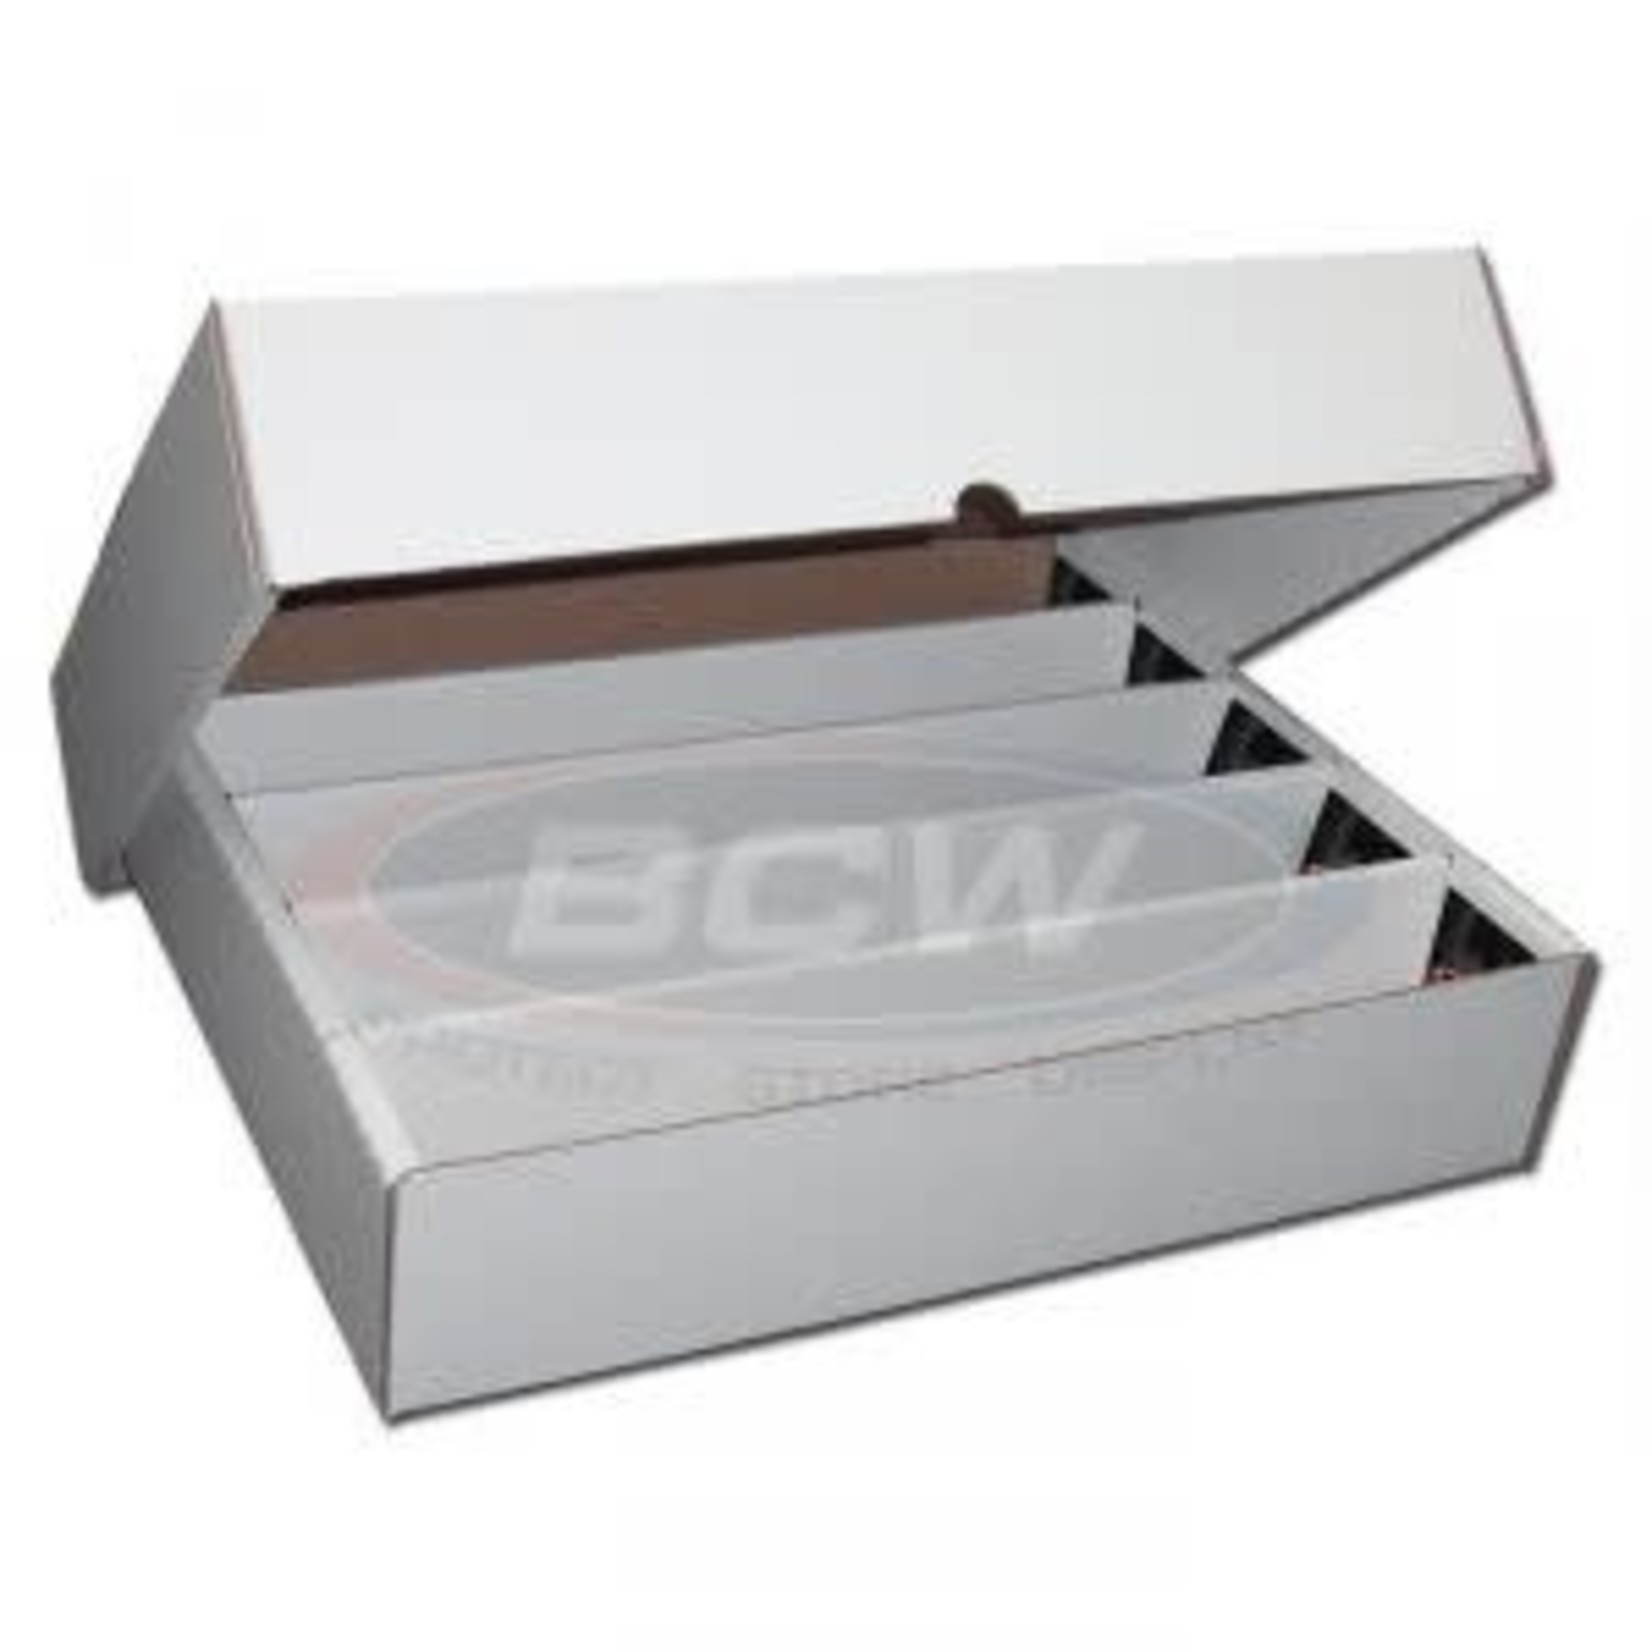 BCW 5000 Count Box with lid